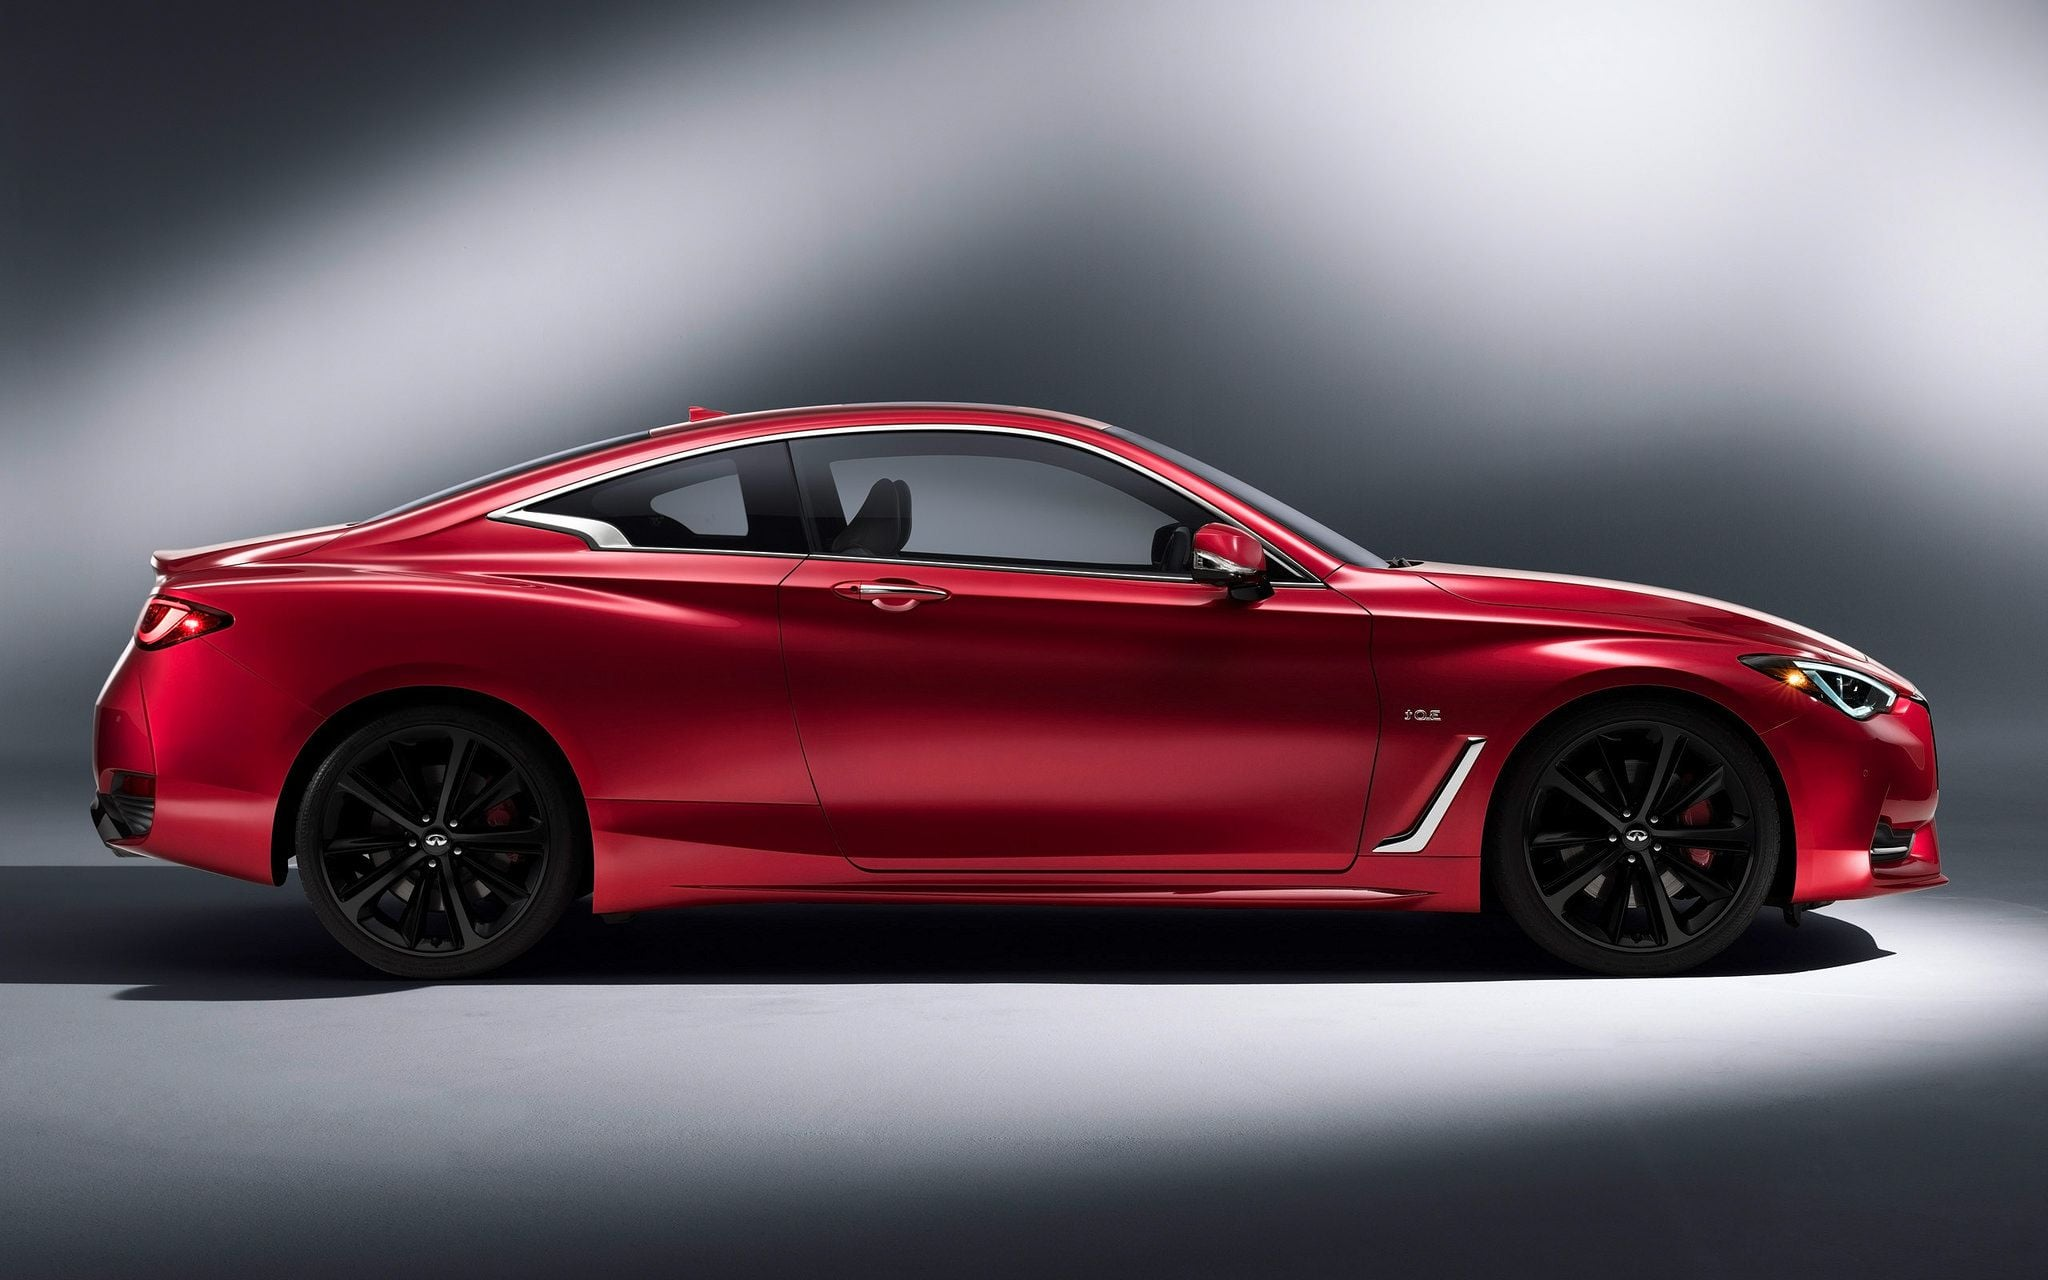 2017 Infiniti Q60s wallpapers HD free Download